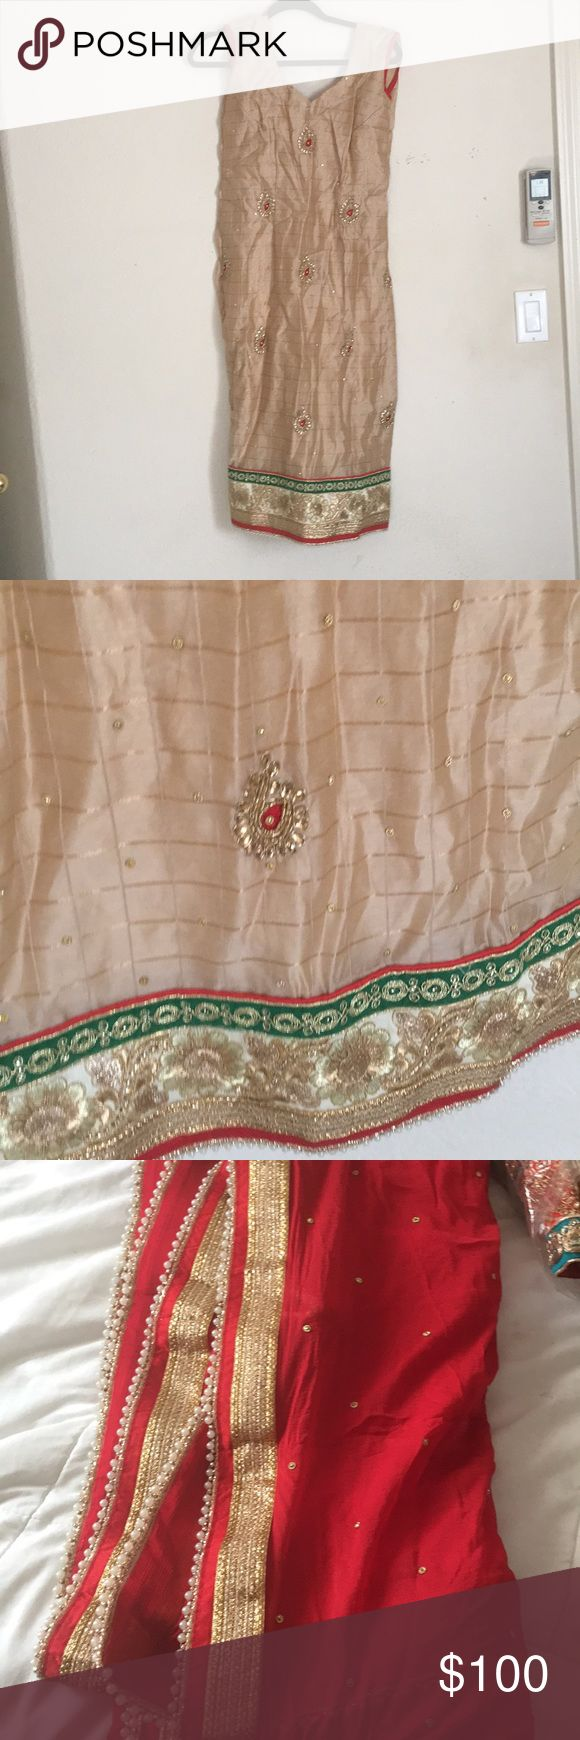 Indian Bollywood suit Never worn   Bust 37 Other